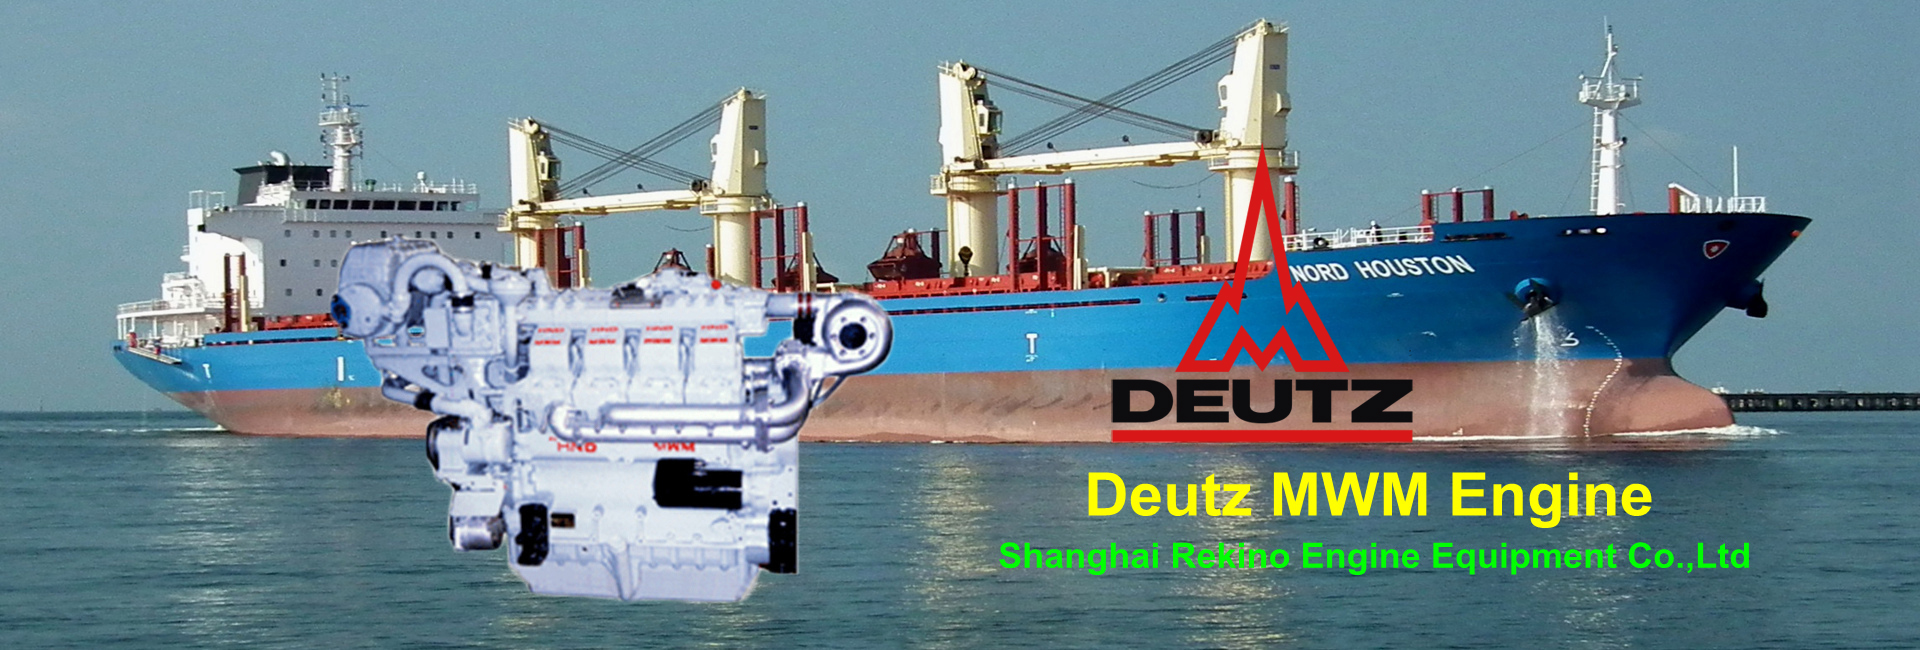 Deutz MWM engine 1